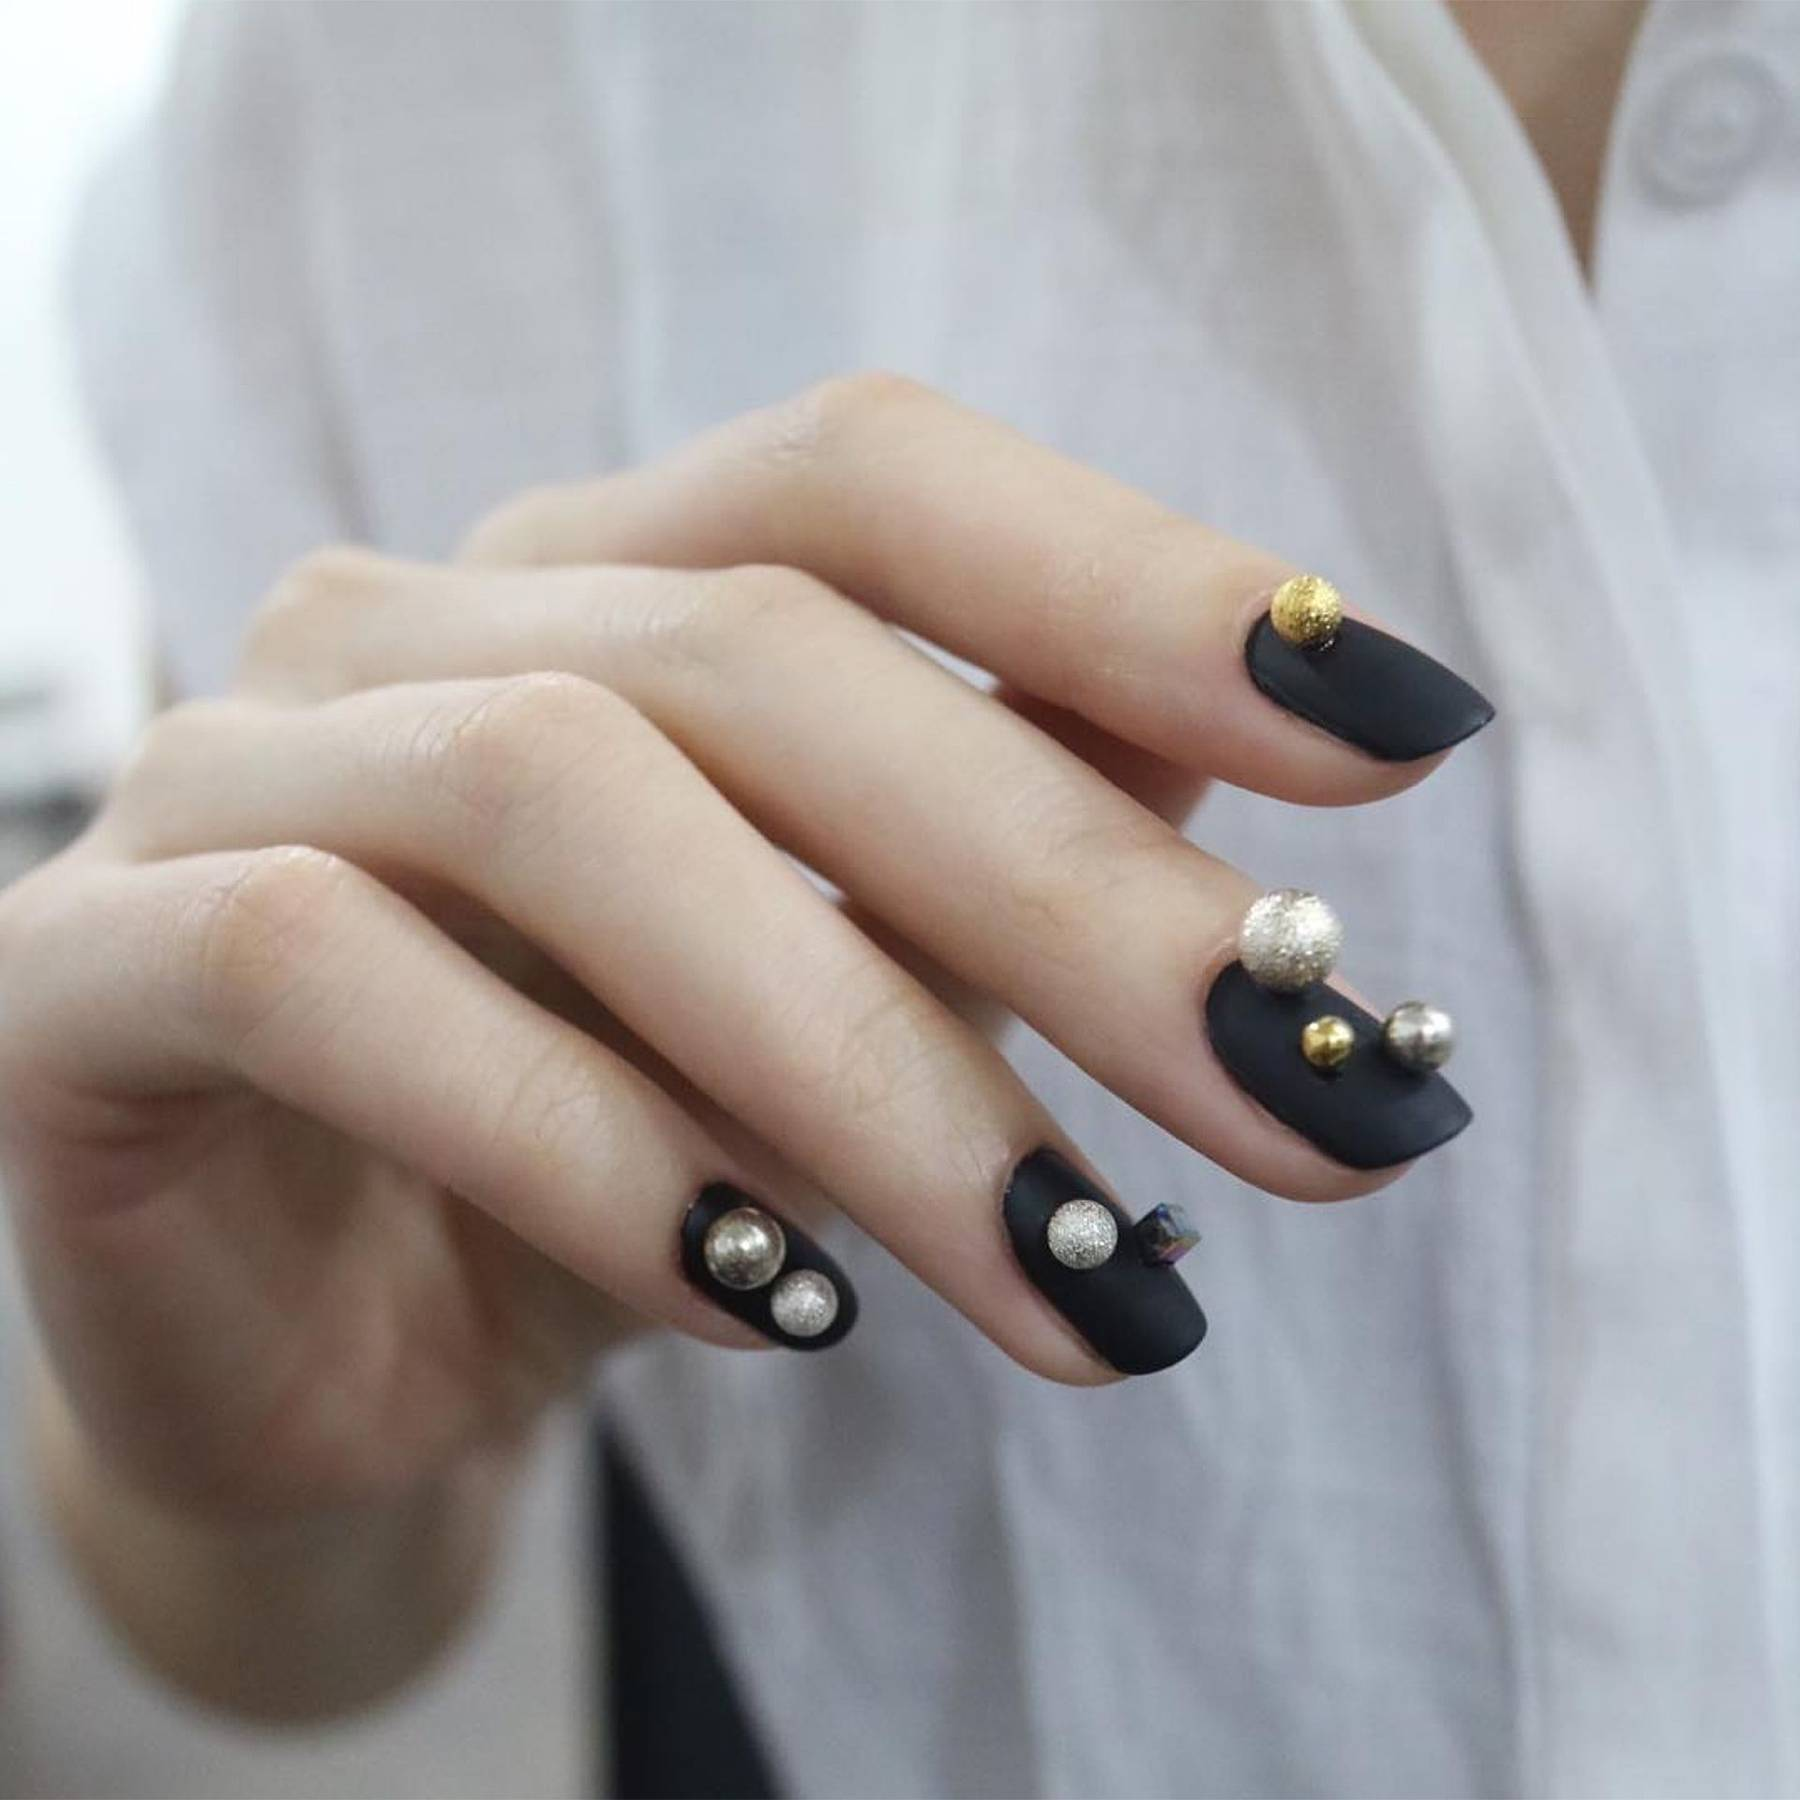 Korean nail art nail designs pictures from instagram glamour uk prinsesfo Image collections